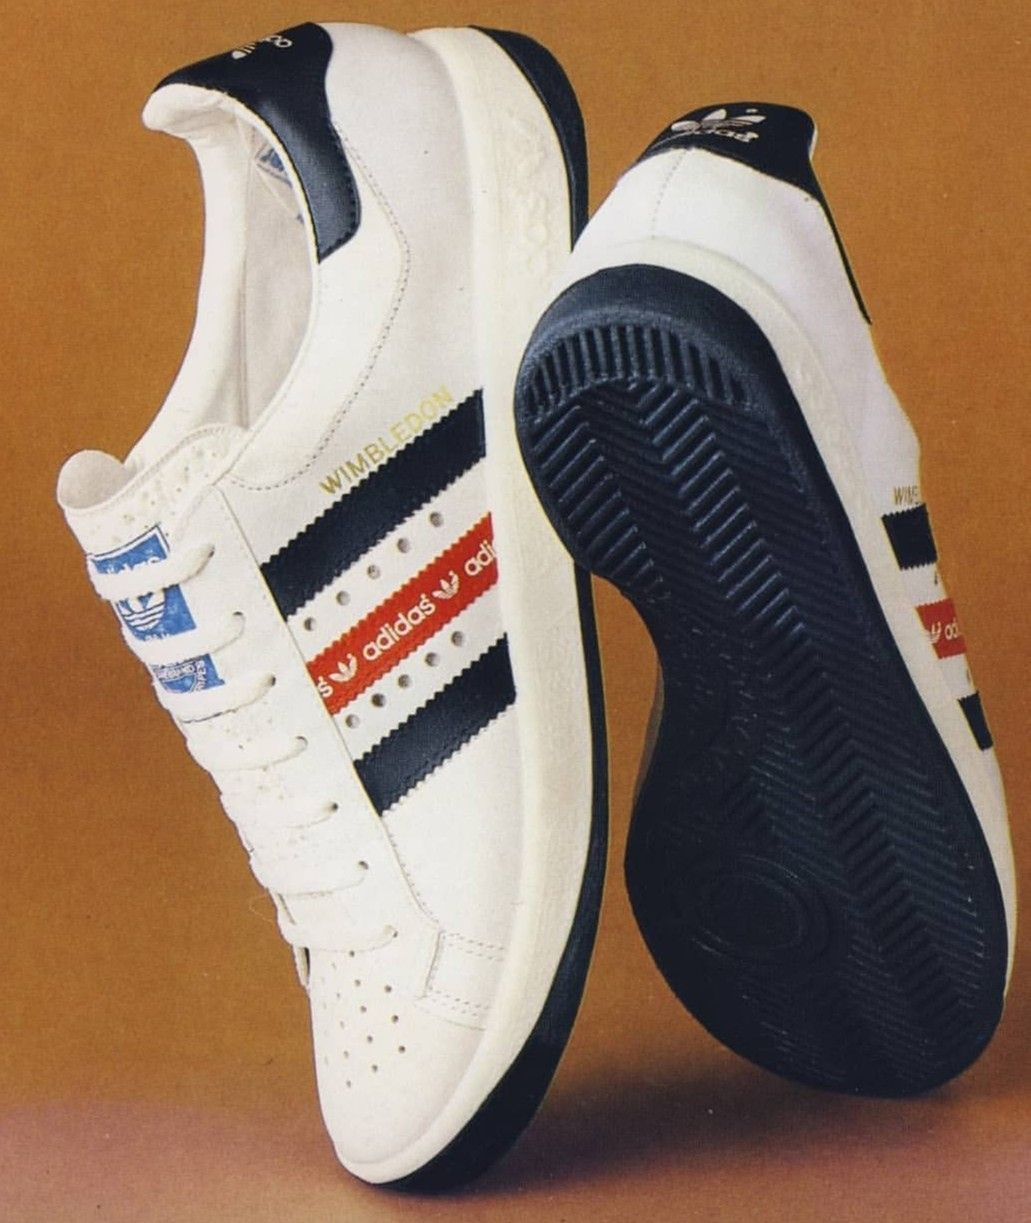 competitive price 3bf1c e5303 Classic Adidas Wimbledon - one of the finest tennis shoes adidas has ever  released - I had a pair of these beauties in my youth!